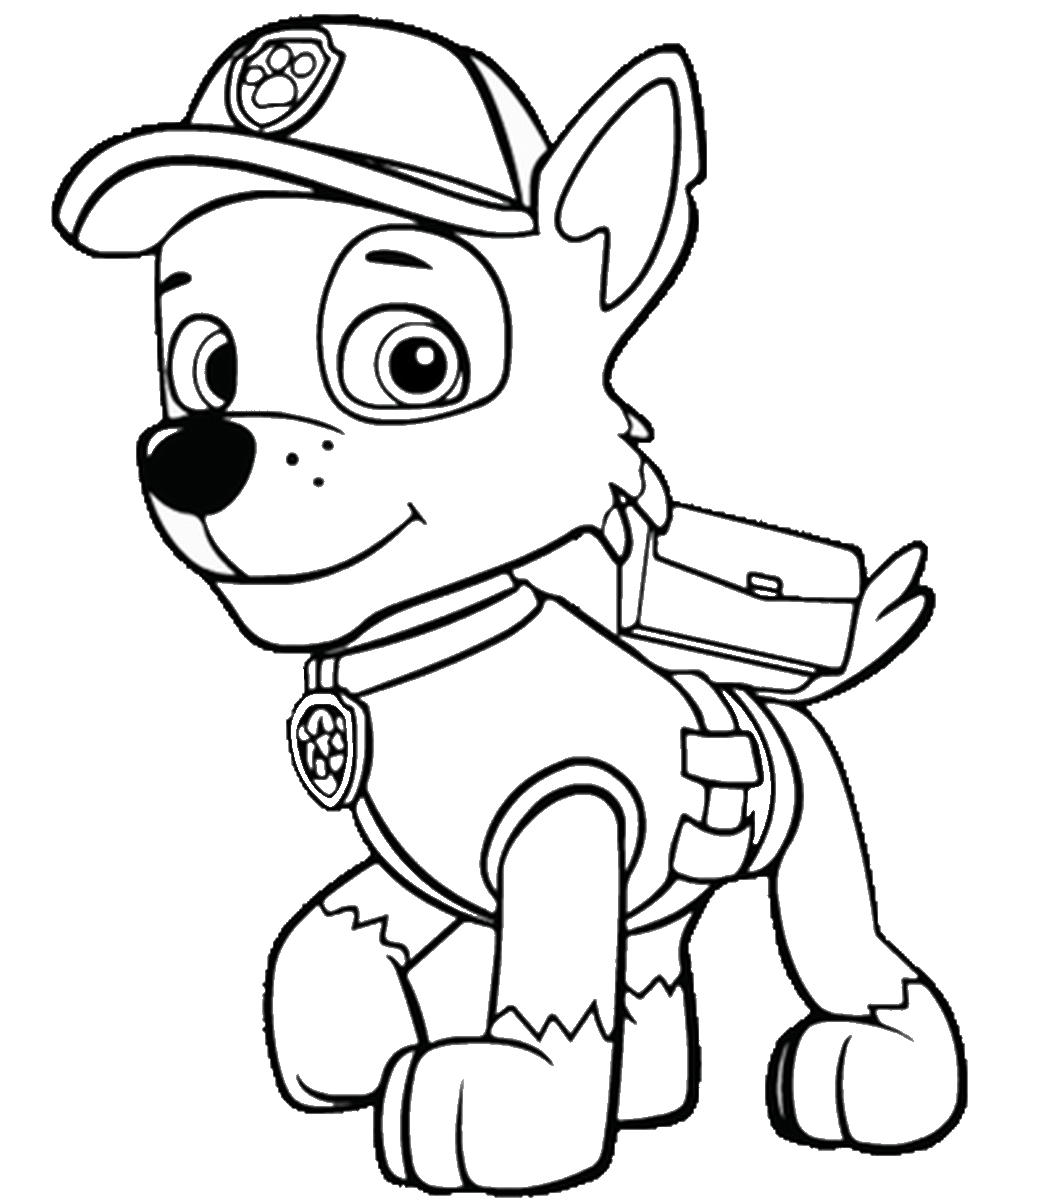 coloring images paw patrol everest paw patrol coloring lesson kids coloring page paw patrol coloring images